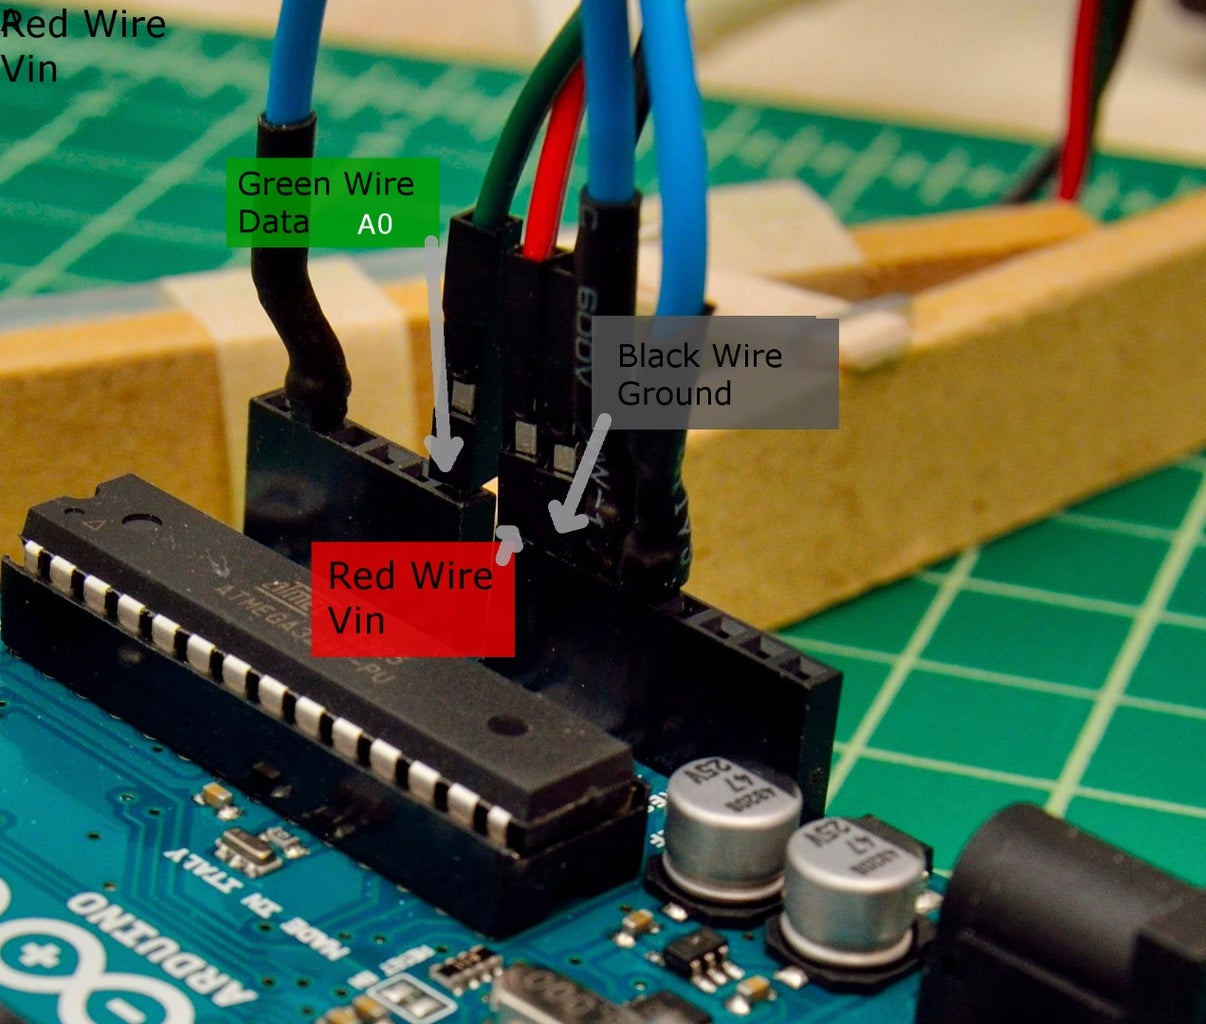 The LED Strip and Arduino